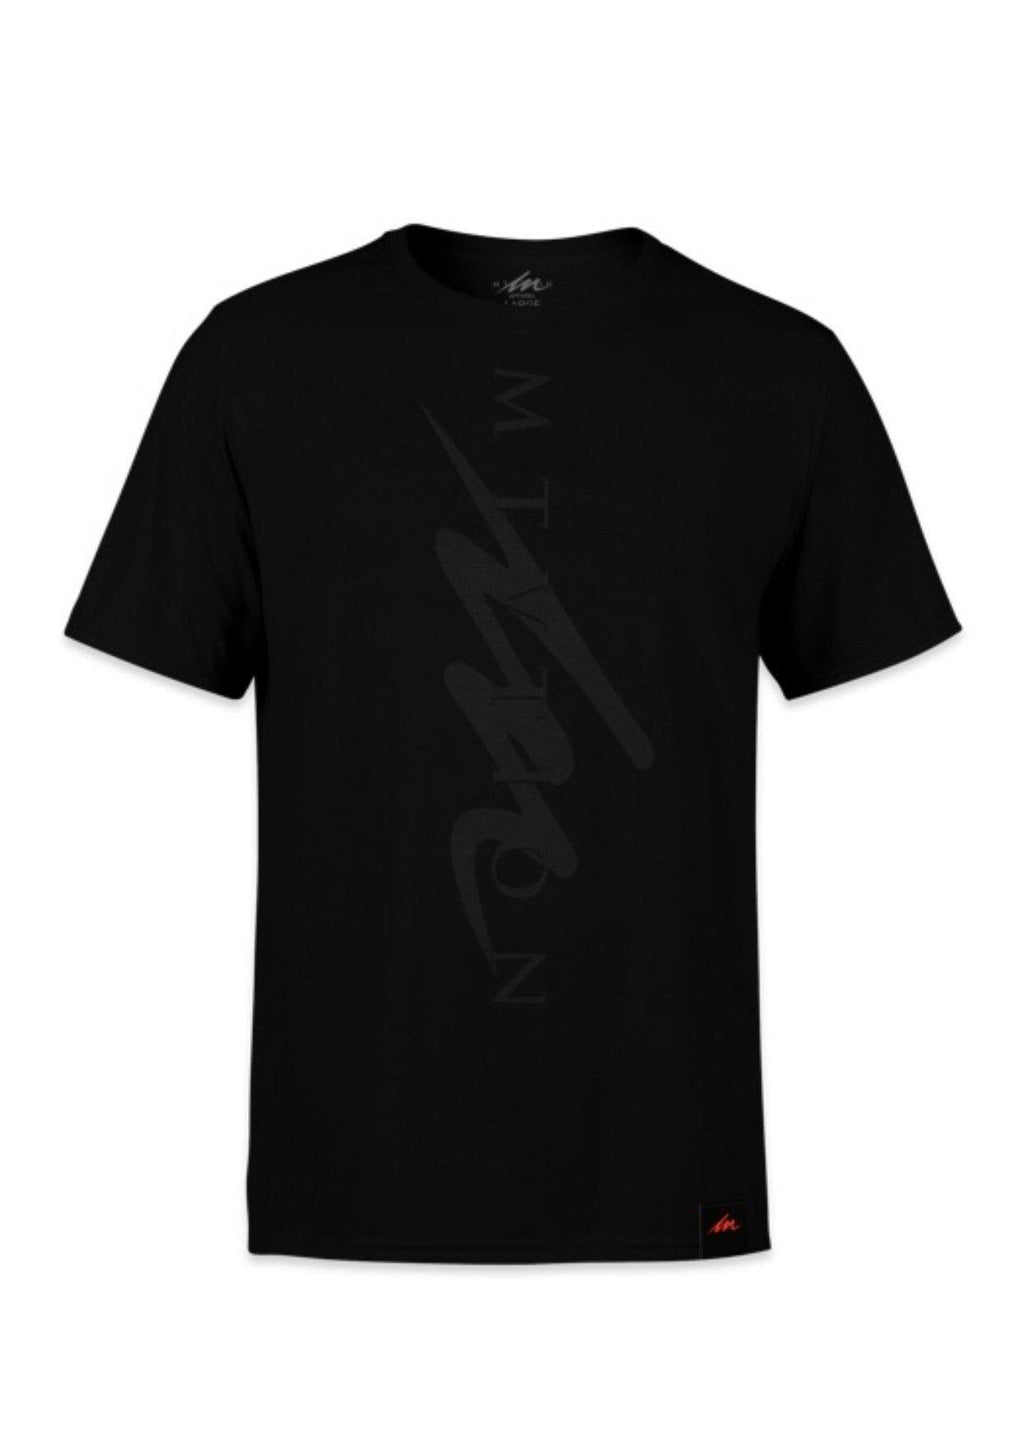 MTVTION Eclipse Sharp - Black Shirt-money_motivation_brand